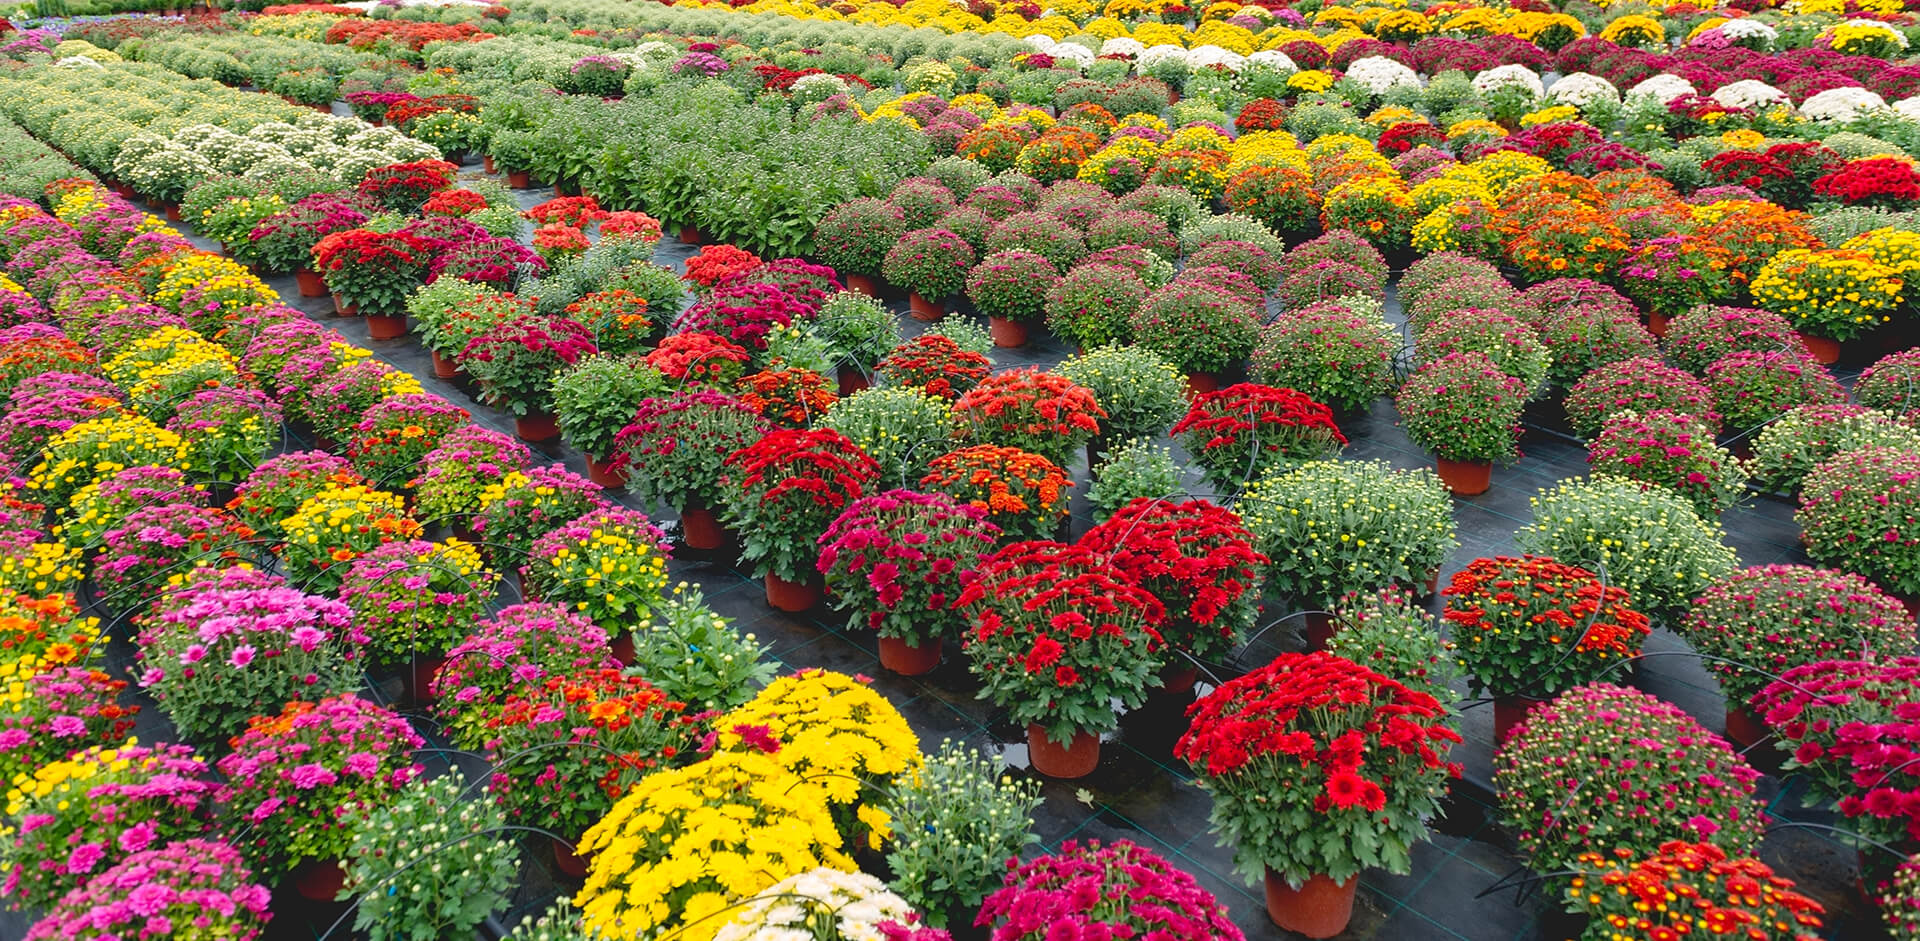 Rows of Flowers at Nursery